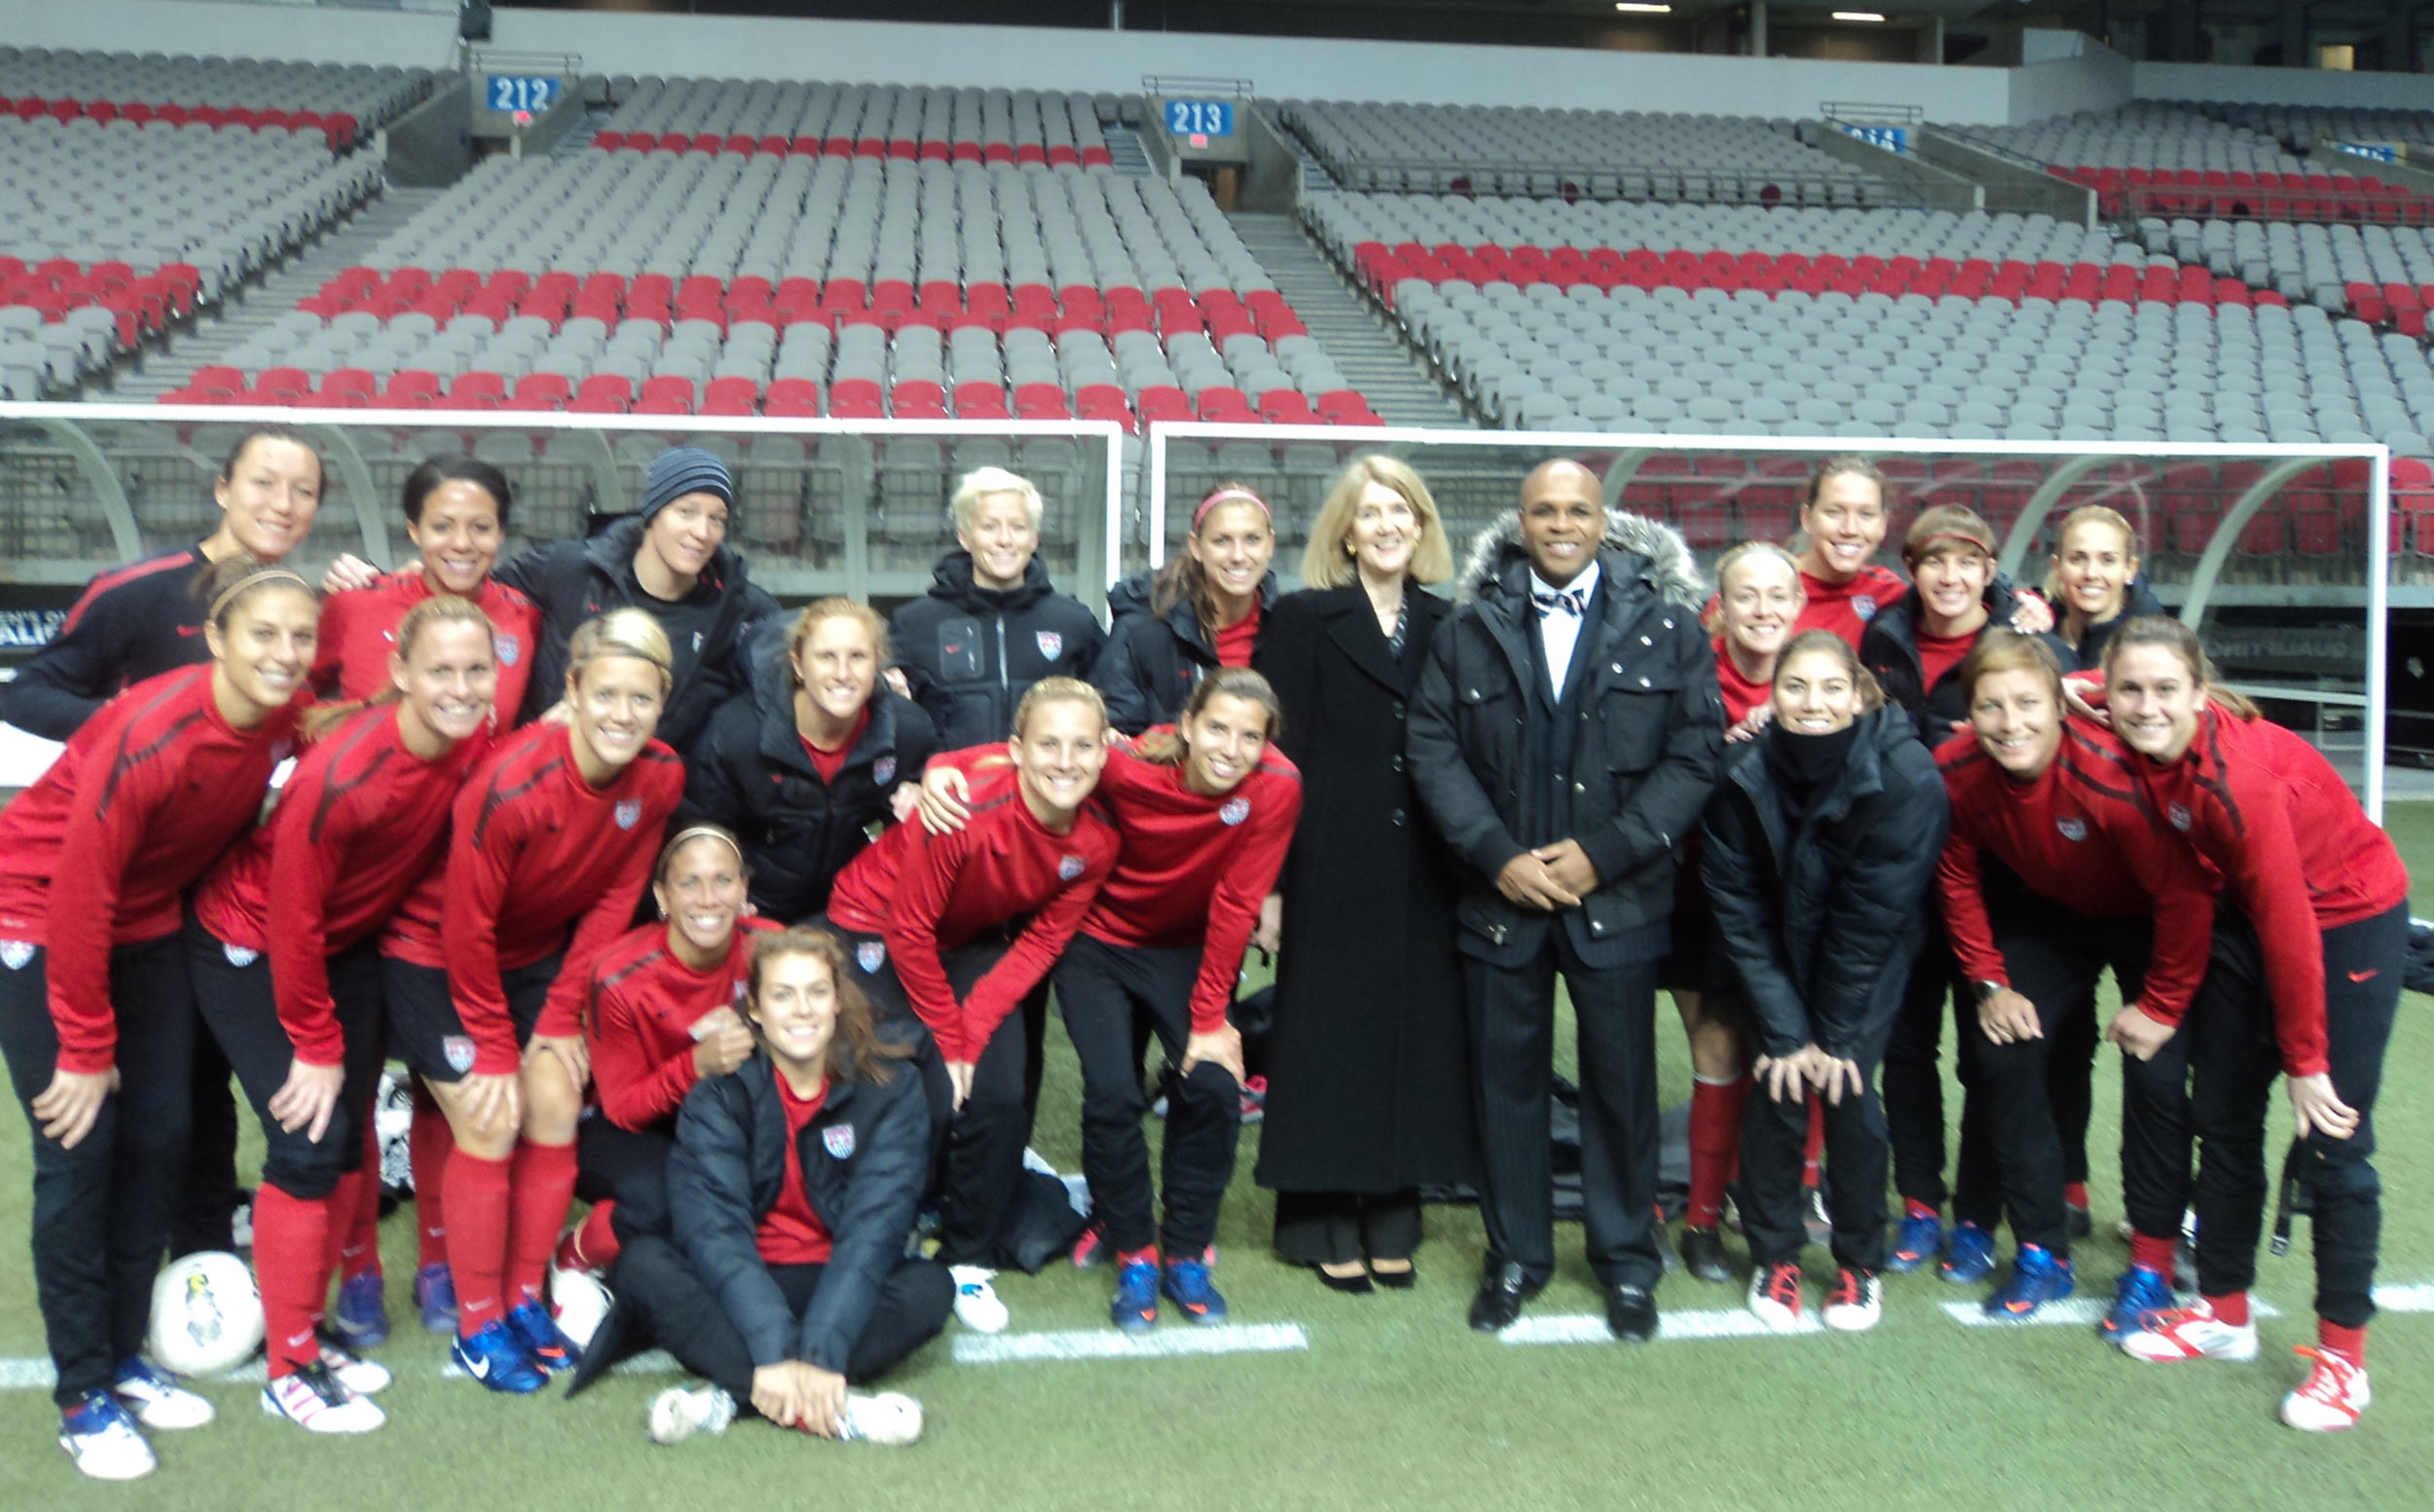 File:U.S. Women's Soccer team in Vancouver with Consul General Anne  Callaghan.jpg